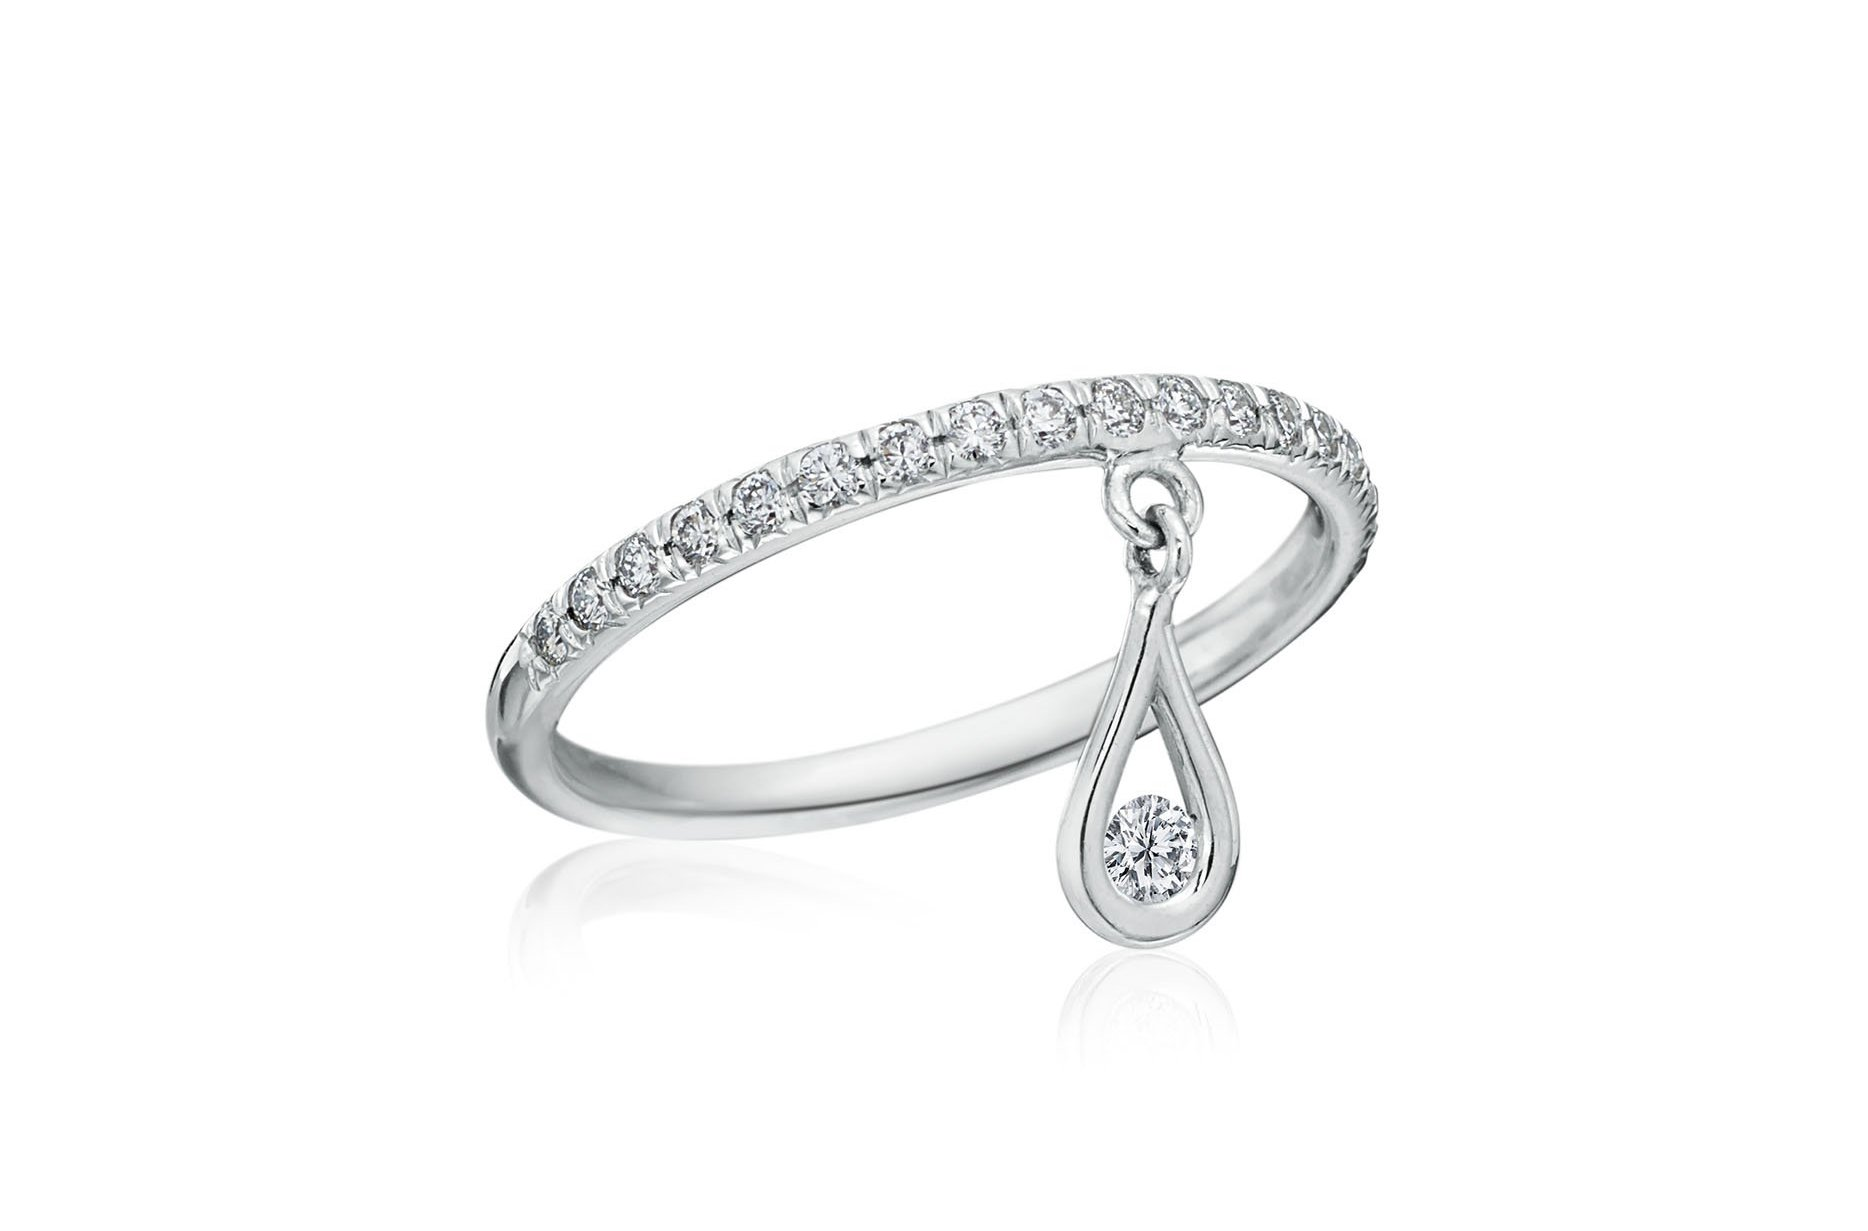 Maria Canale Drop Collection round brilliant cut diamond ring in 18k white gold.